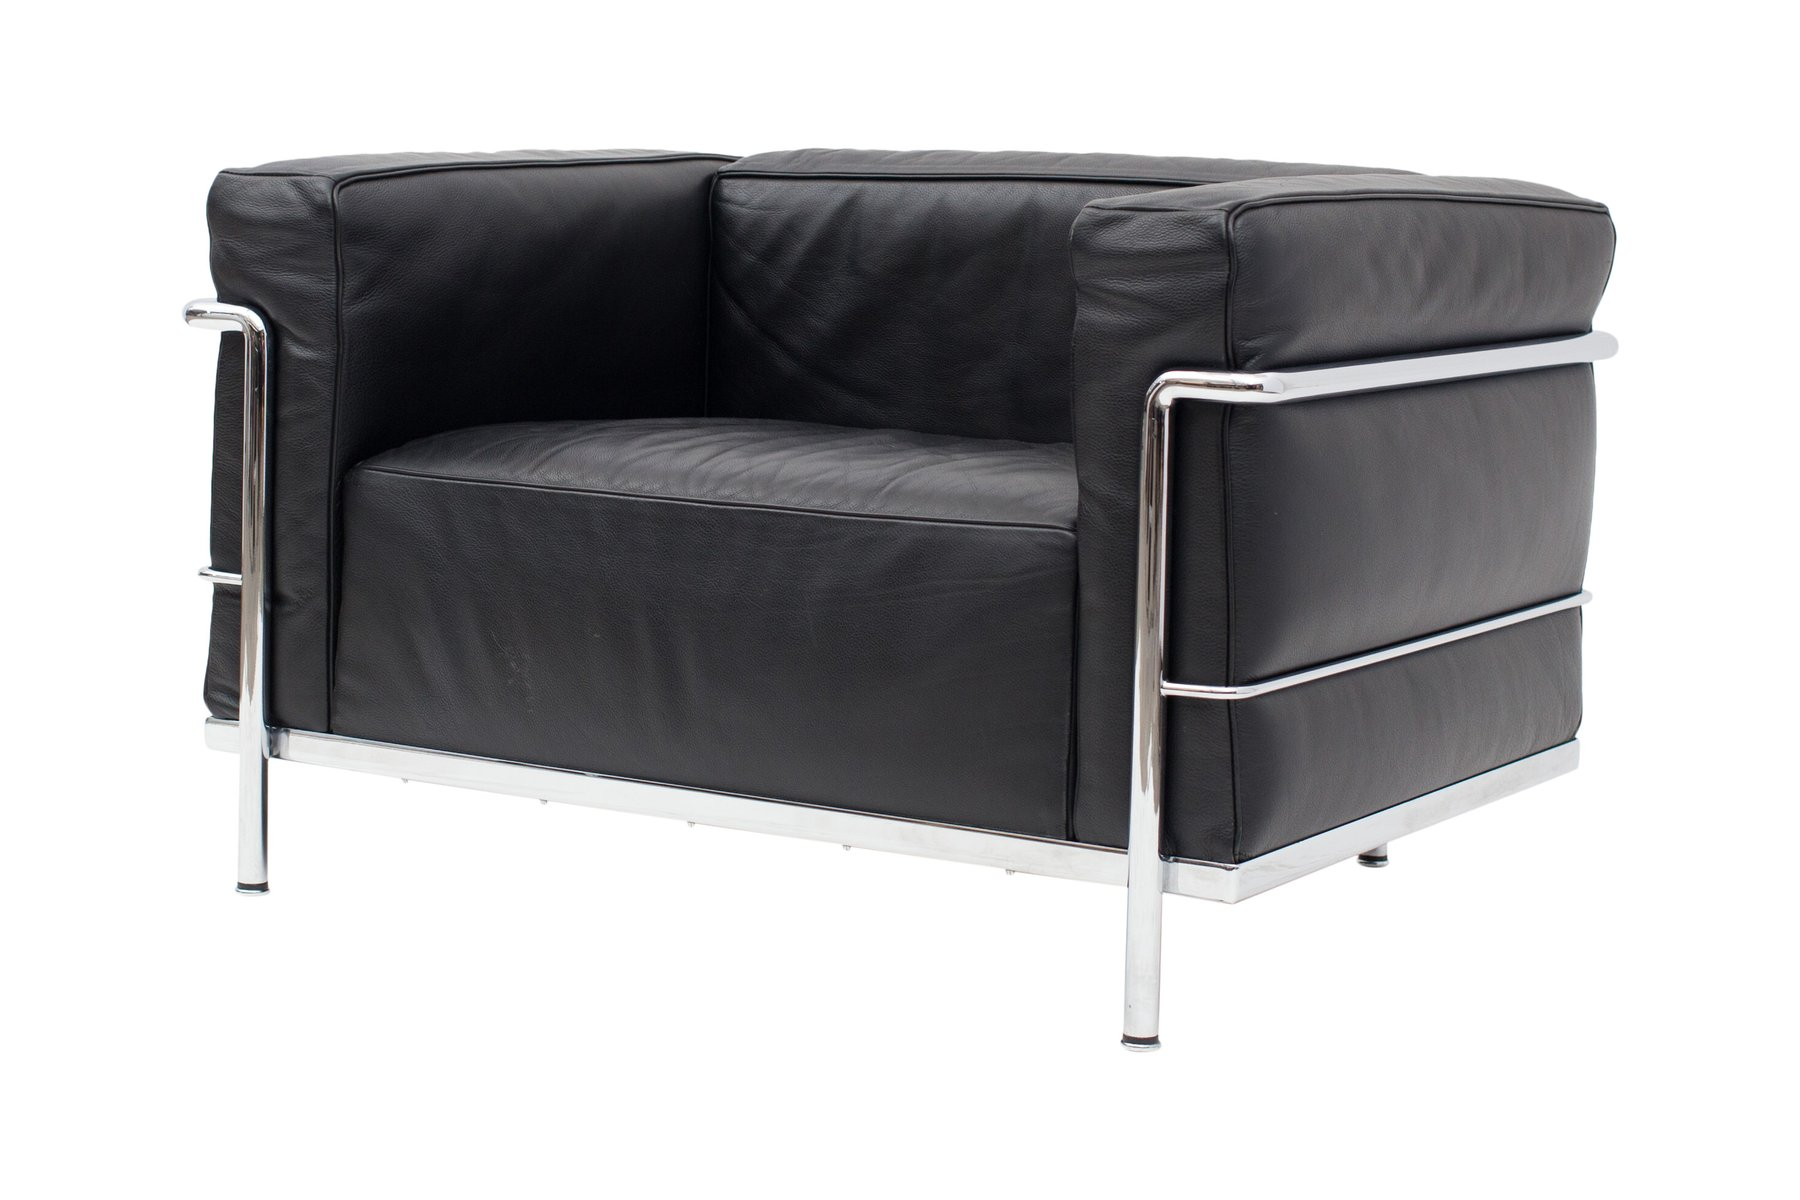 schwarze lc3 poltrona sessel von le corbusier f r cassina. Black Bedroom Furniture Sets. Home Design Ideas